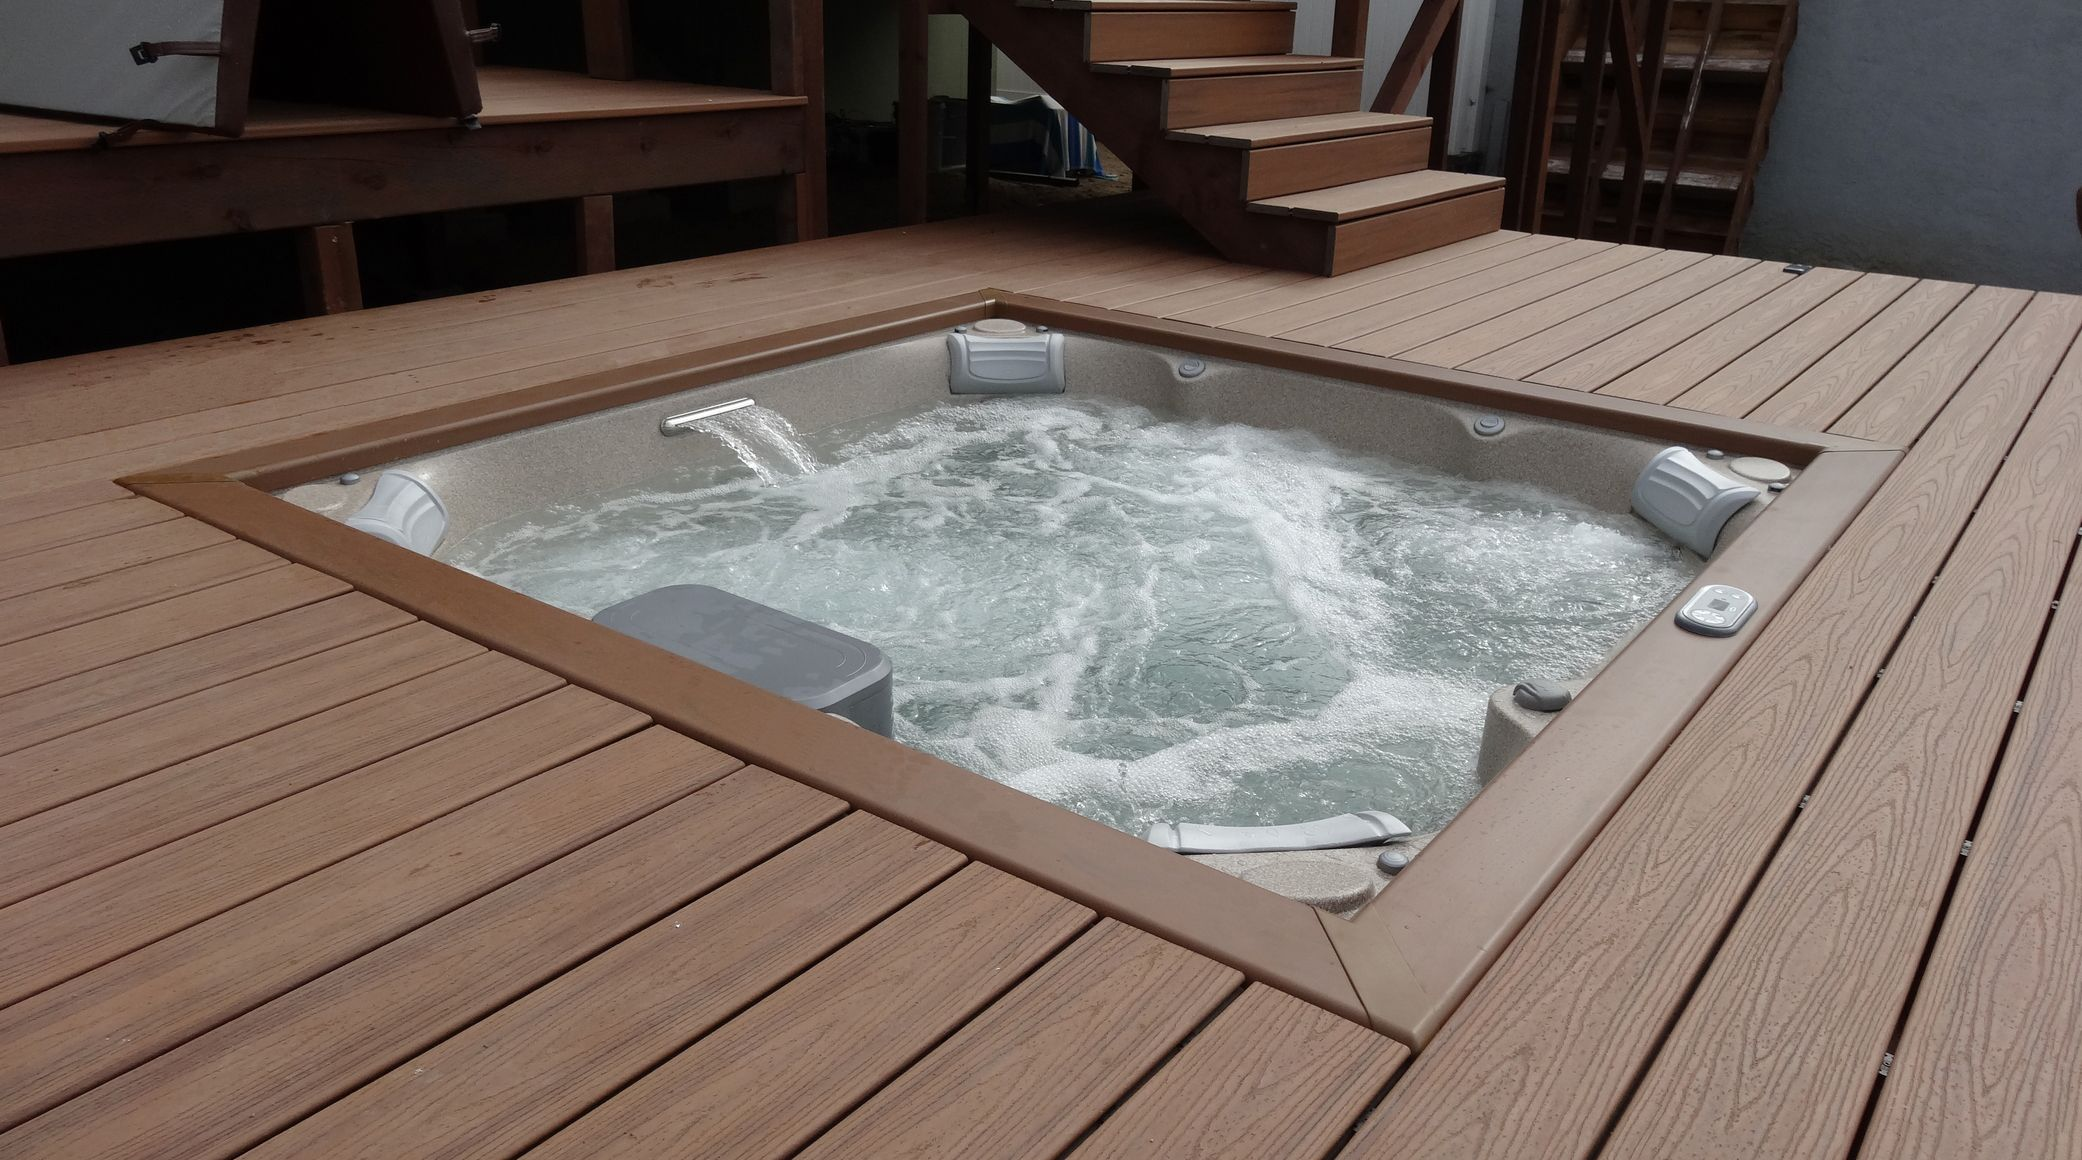 spa jacuzzi jlx encastr dans terrasse en bois jacuzzi. Black Bedroom Furniture Sets. Home Design Ideas